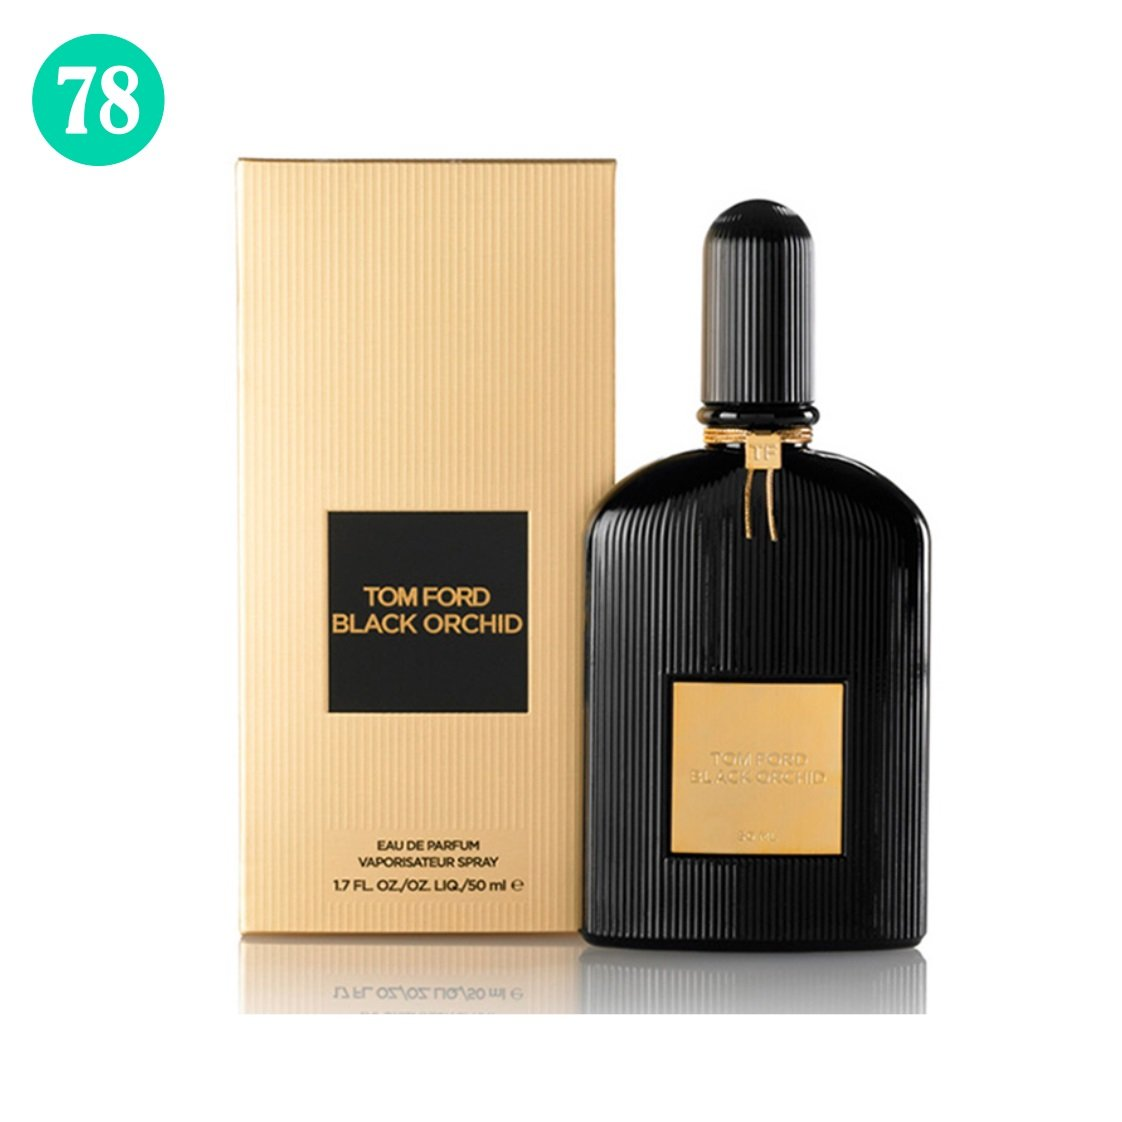 BLACK ORCHID – Tom Ford donna